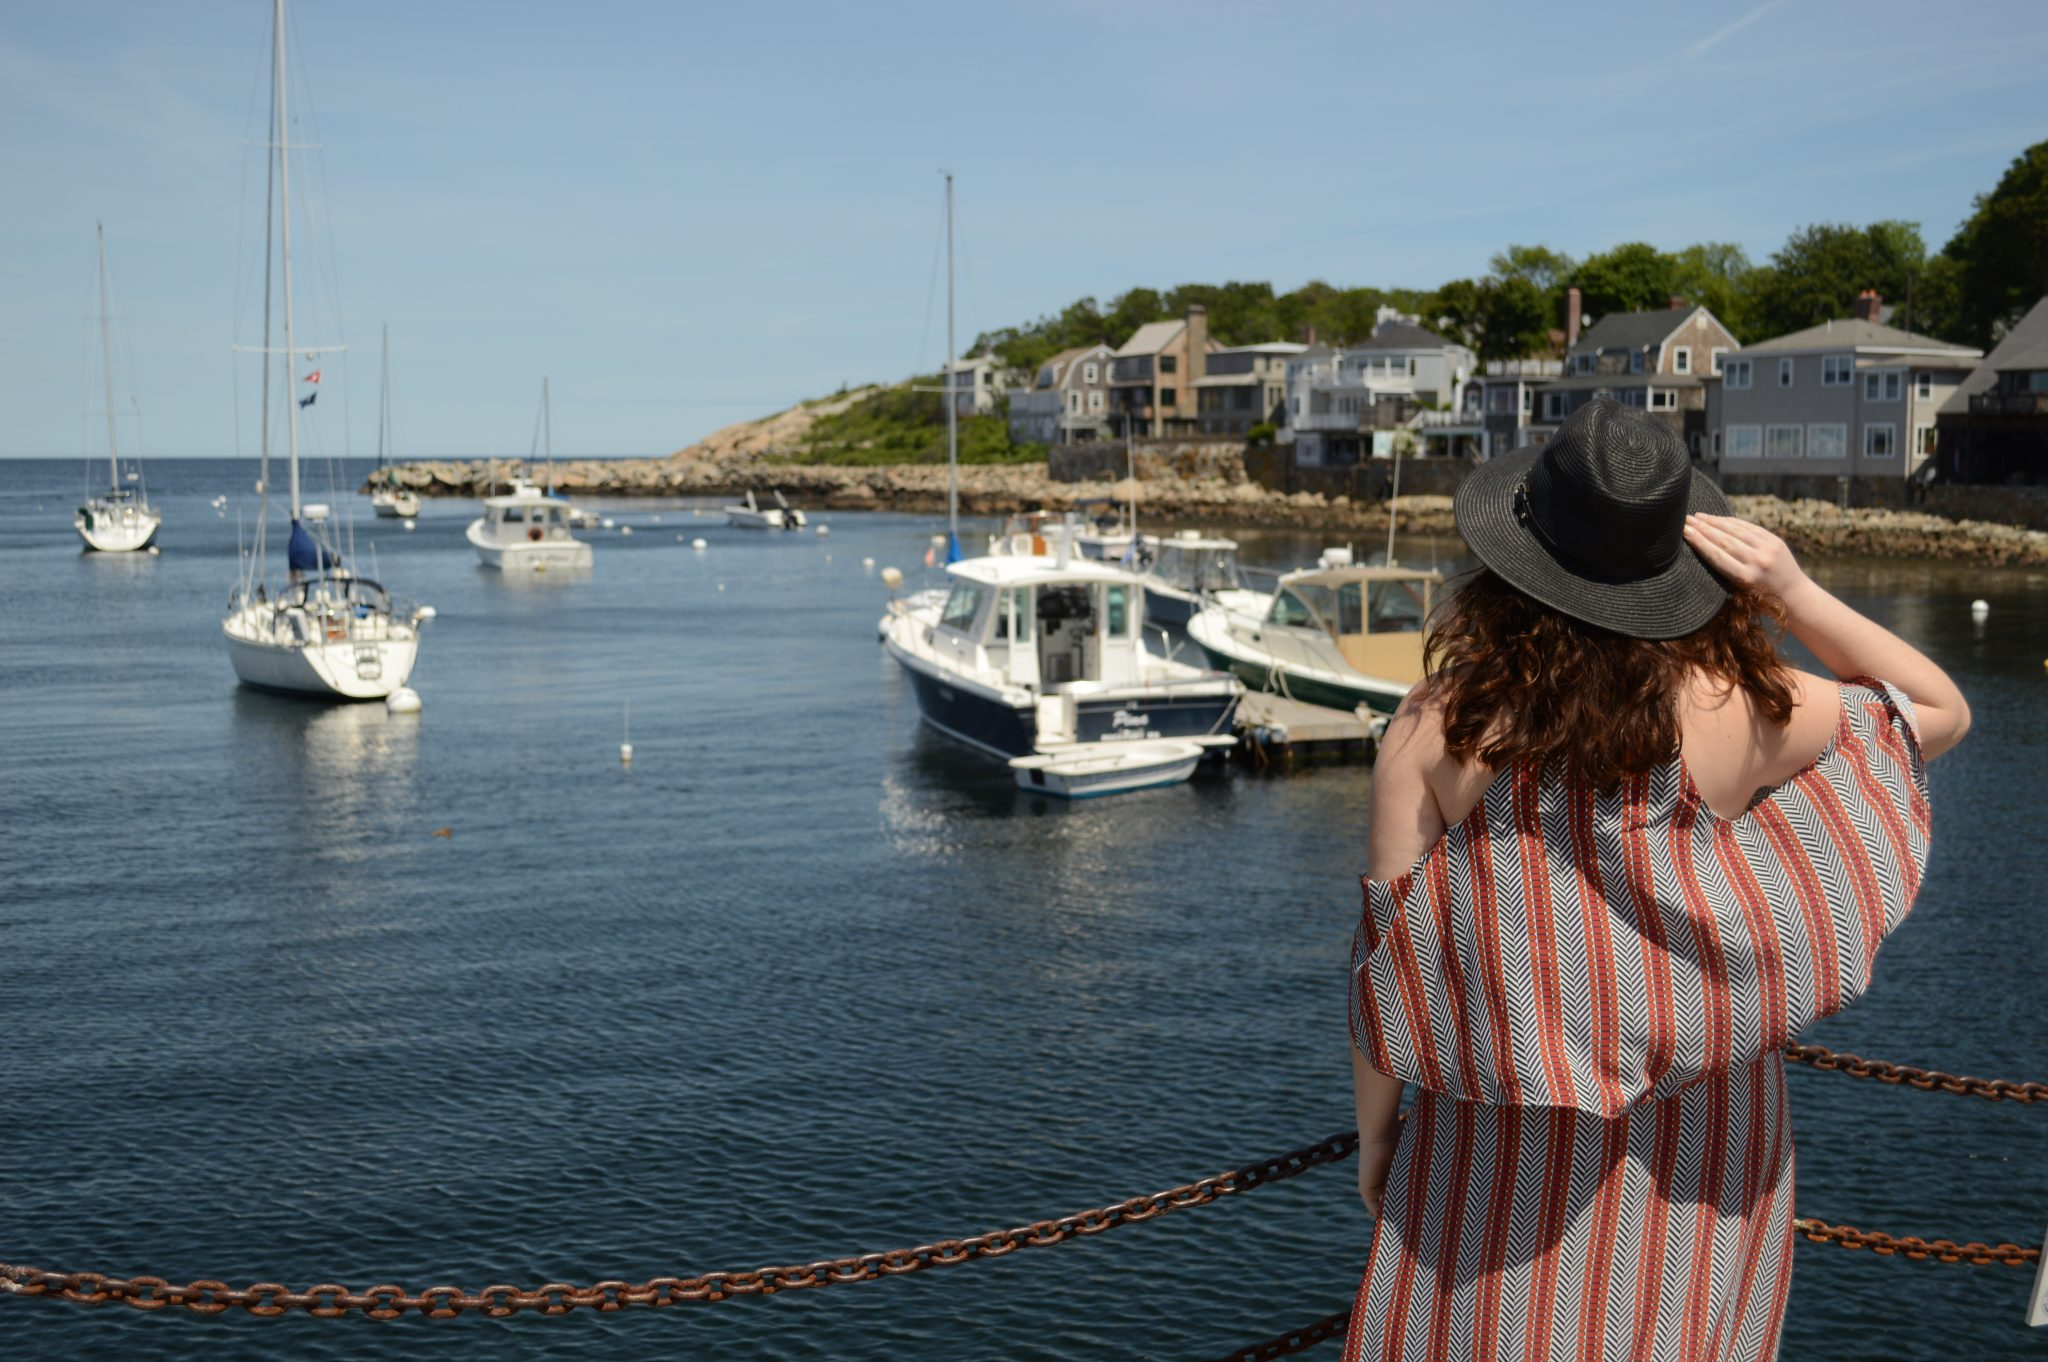 Two Drifters Feature: 10 Things To Do In Rockport